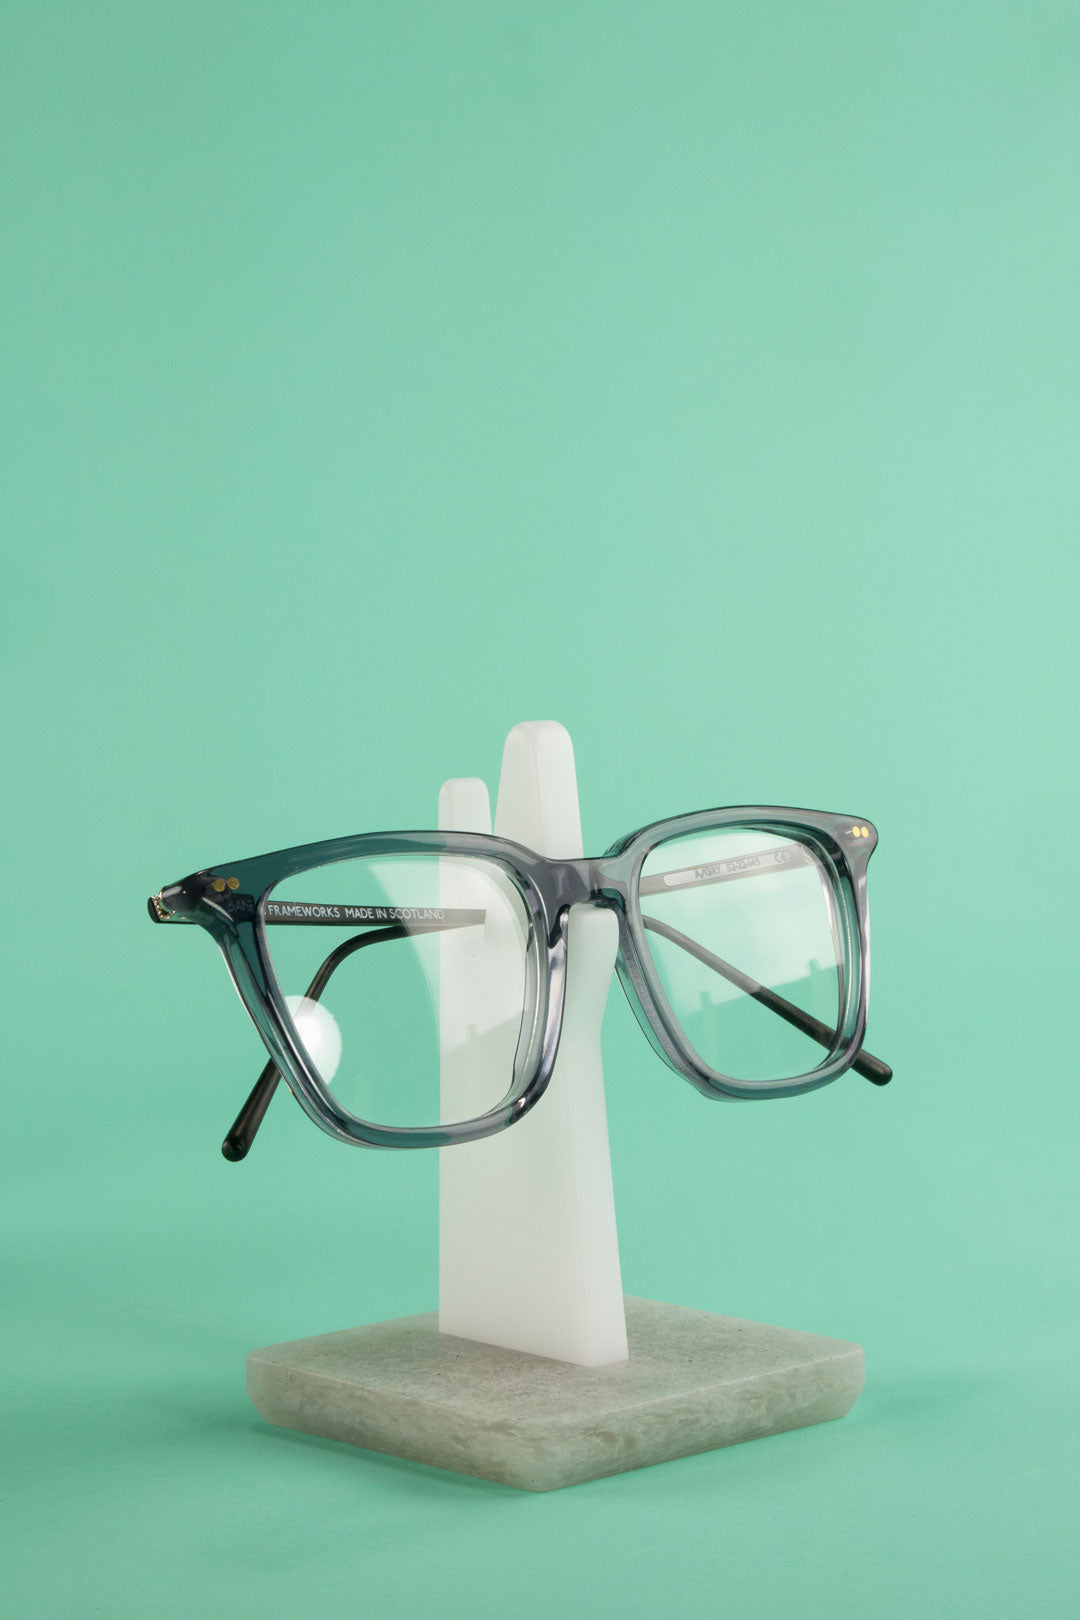 Grey glasses perched on white glasses stand in front of teal background